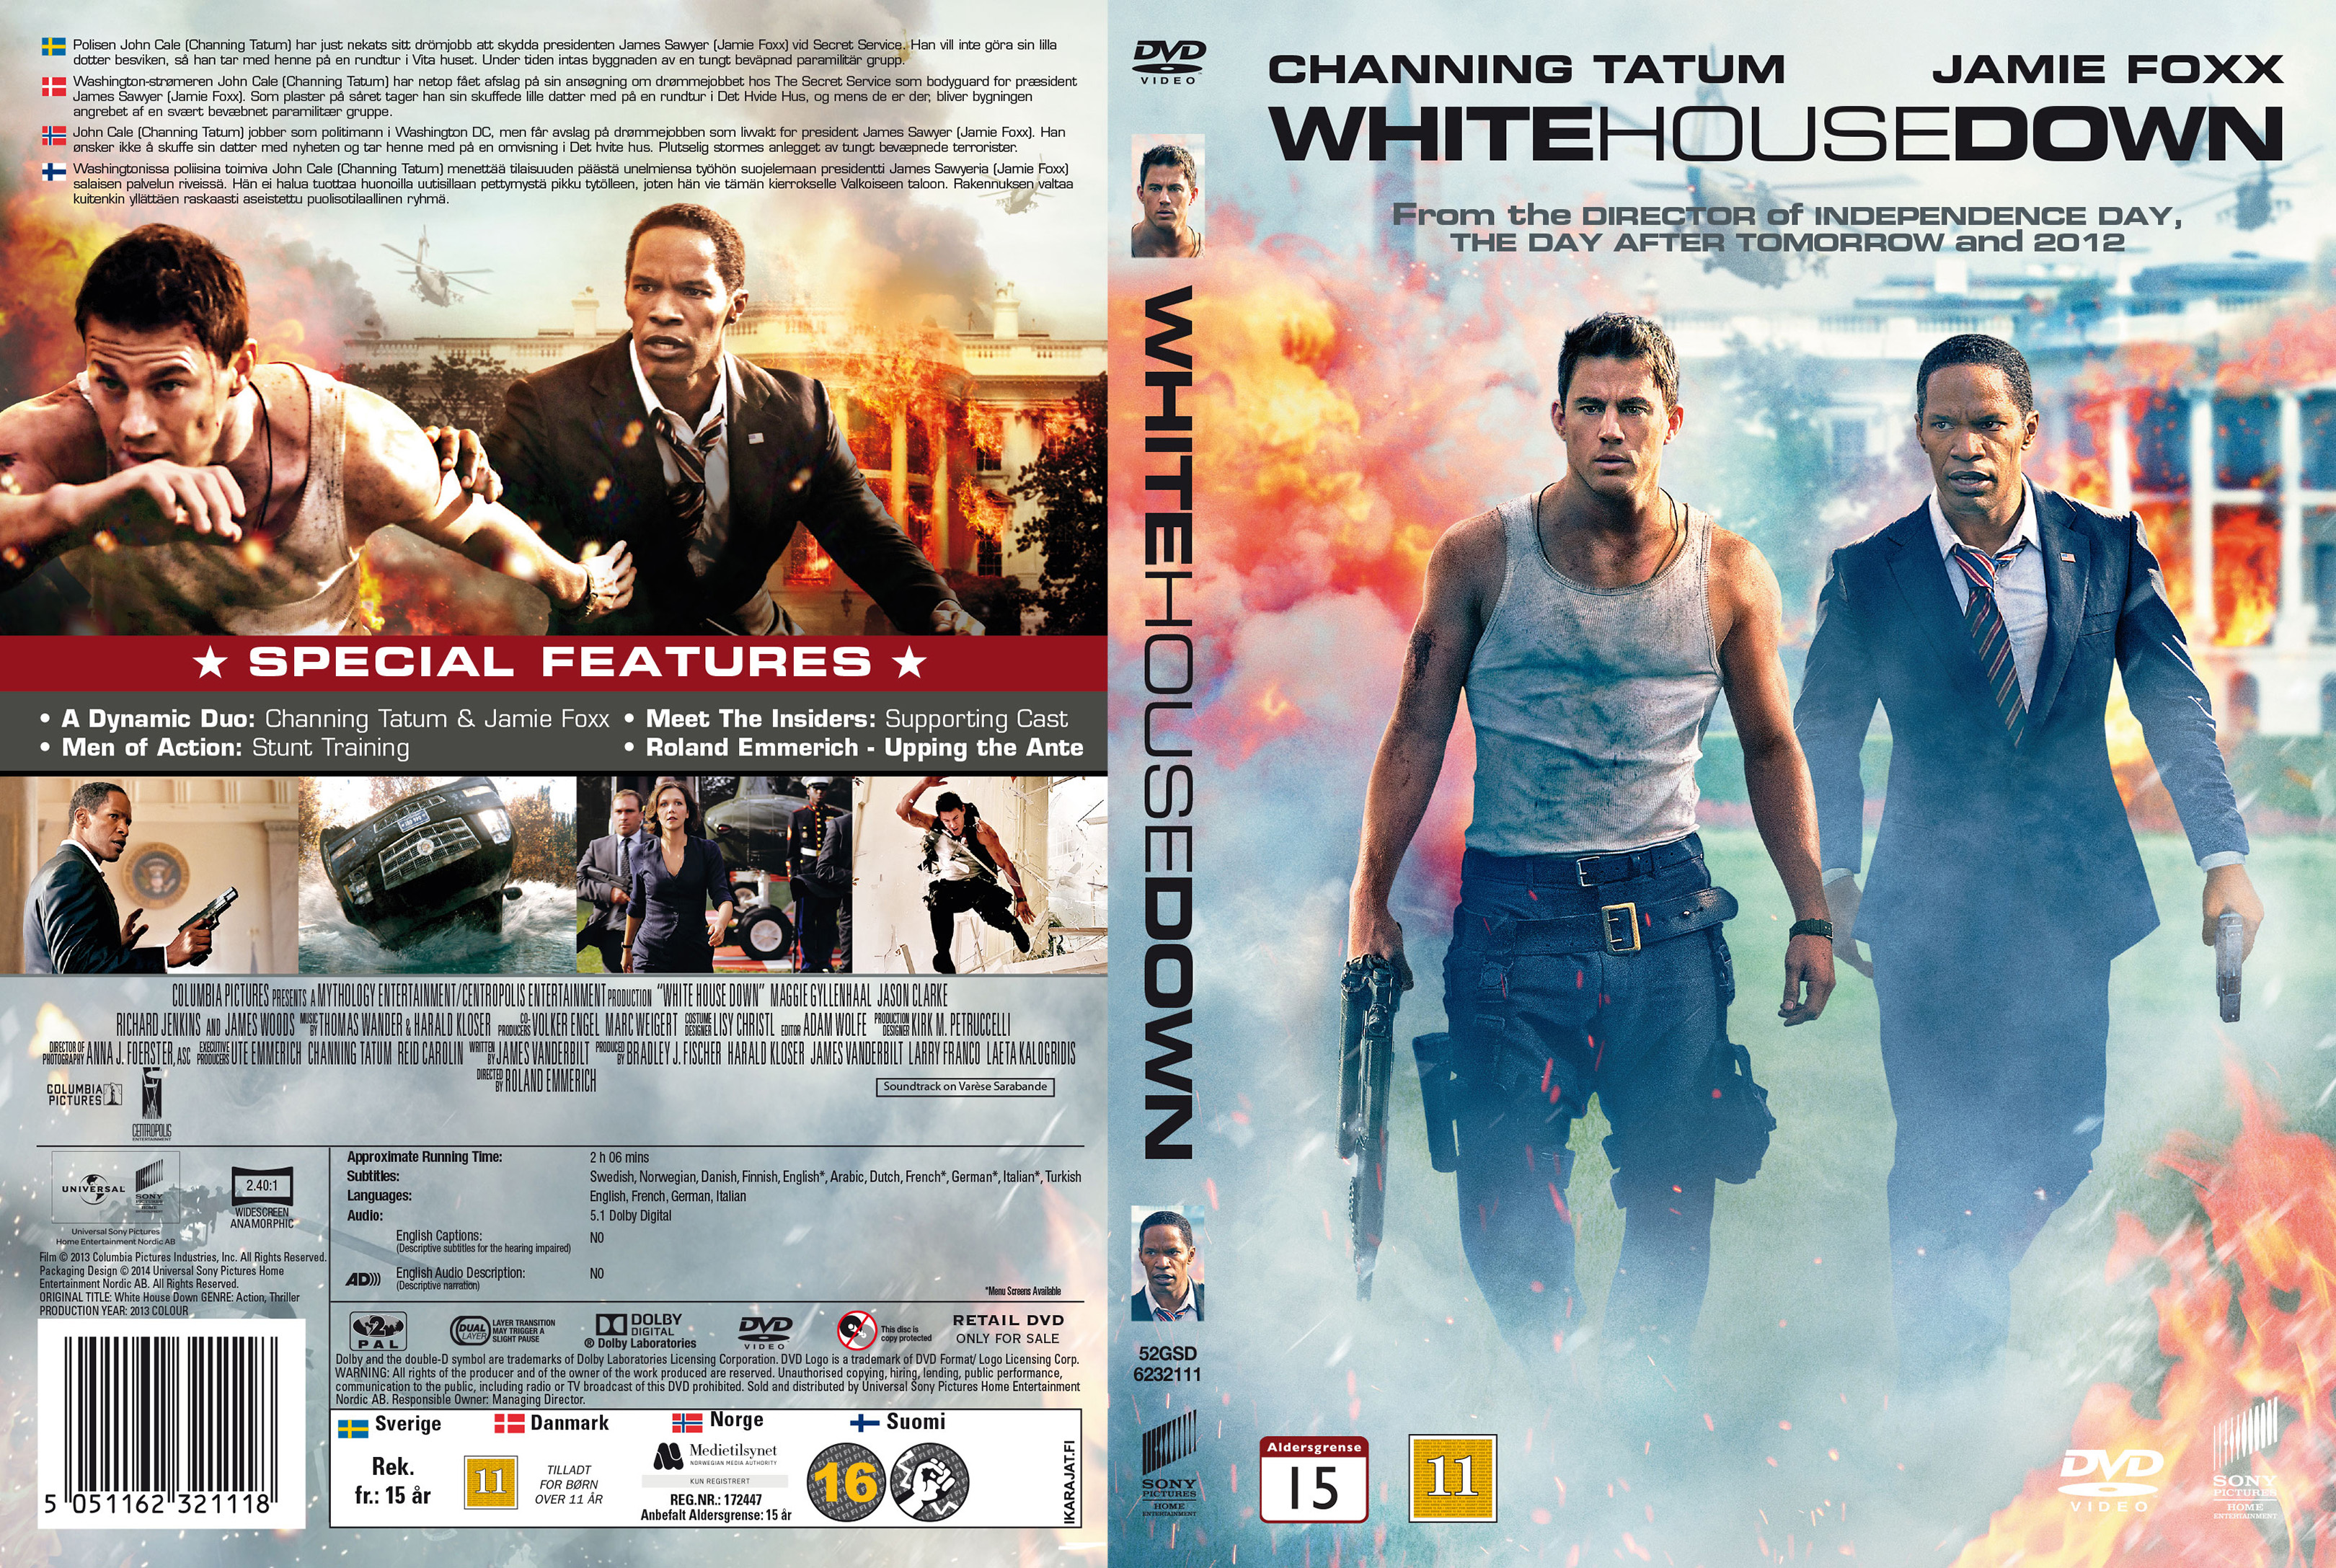 White House Down Dvd COVERS.BOX.SK ::: Whit...